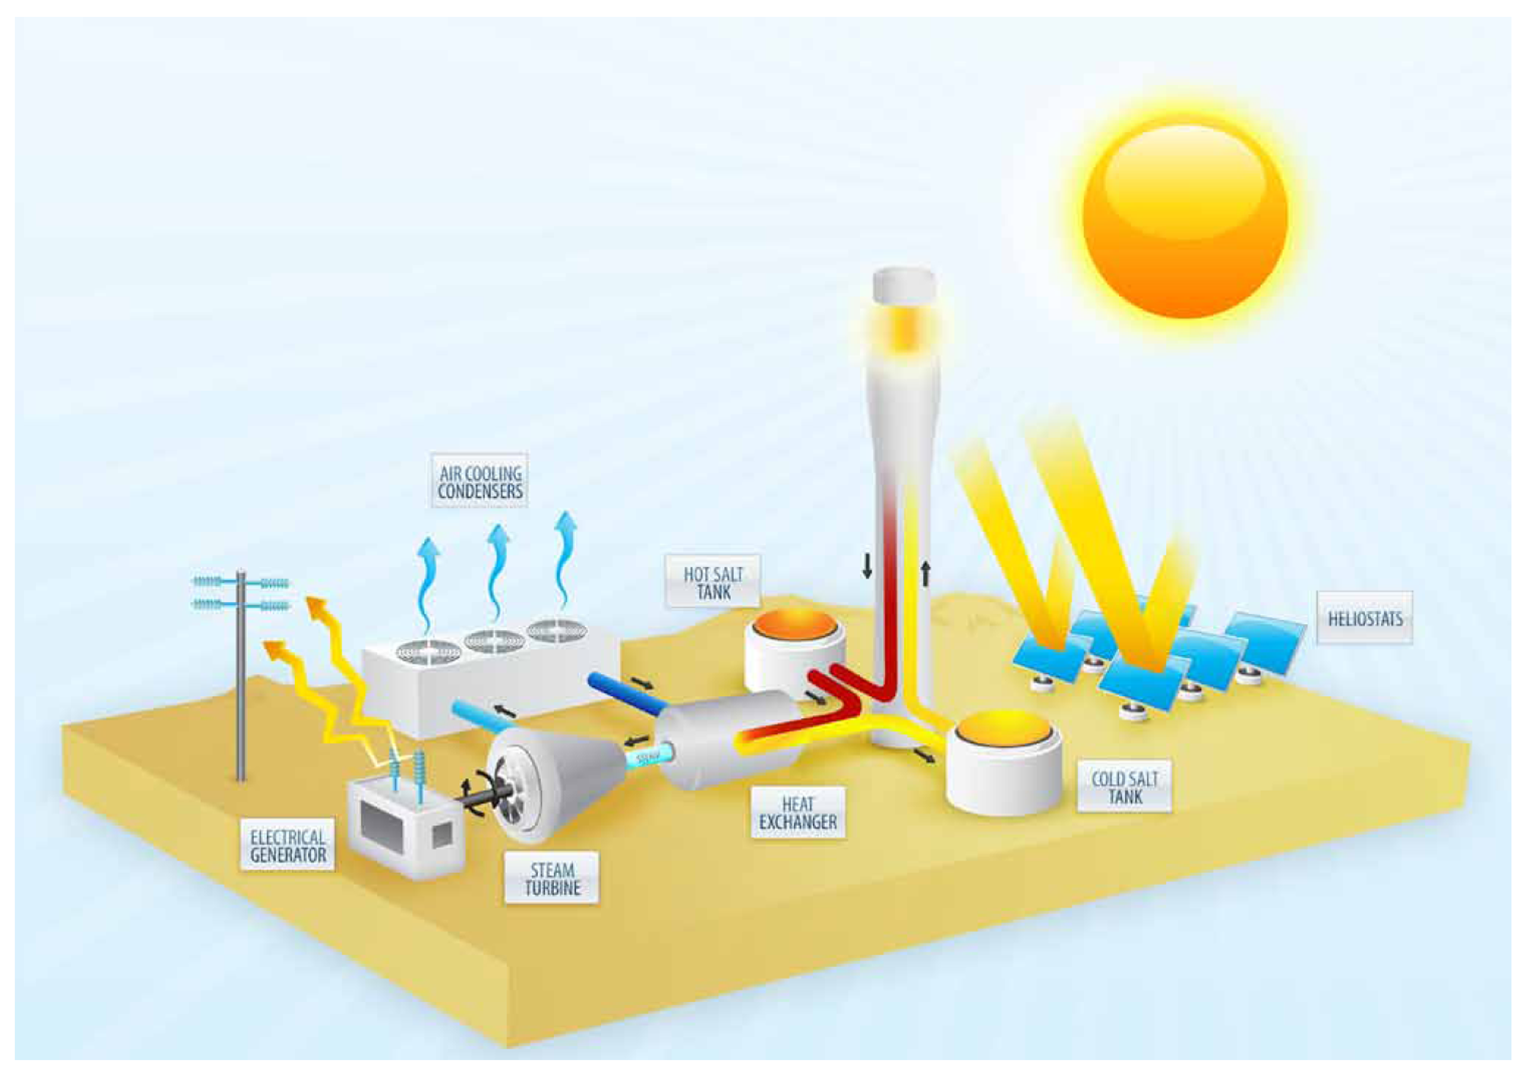 solar thermal power plants diagram for more great solar and wind power projects and information go to www windmillsforelectricity com [ 1526 x 1074 Pixel ]